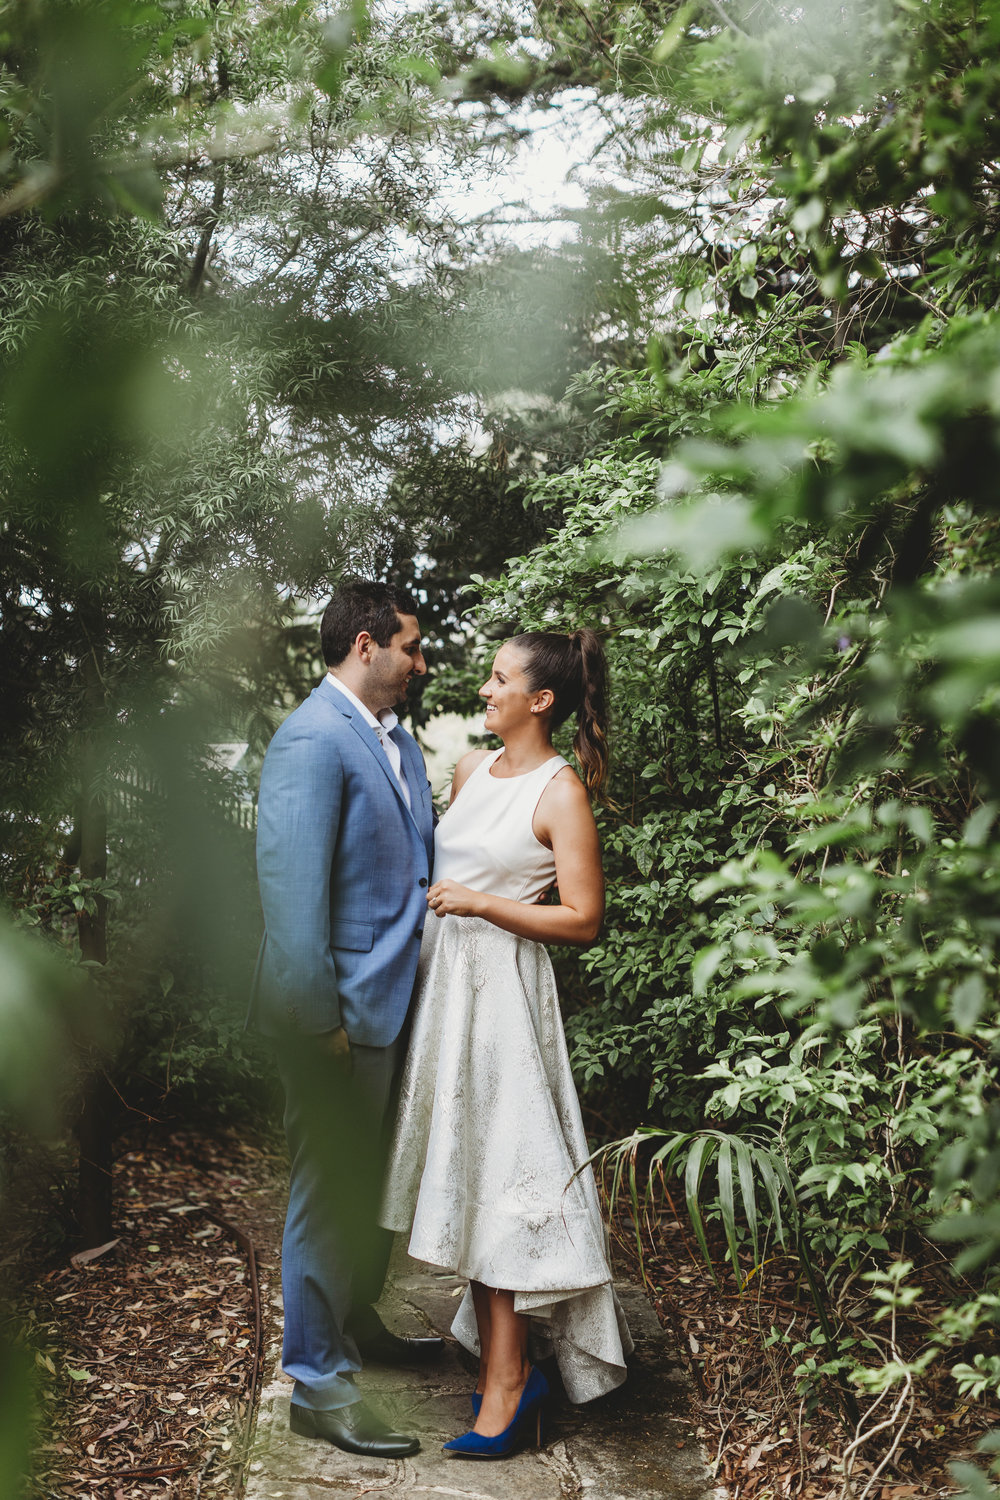 justine + tommy - A Joyful Engagement Party